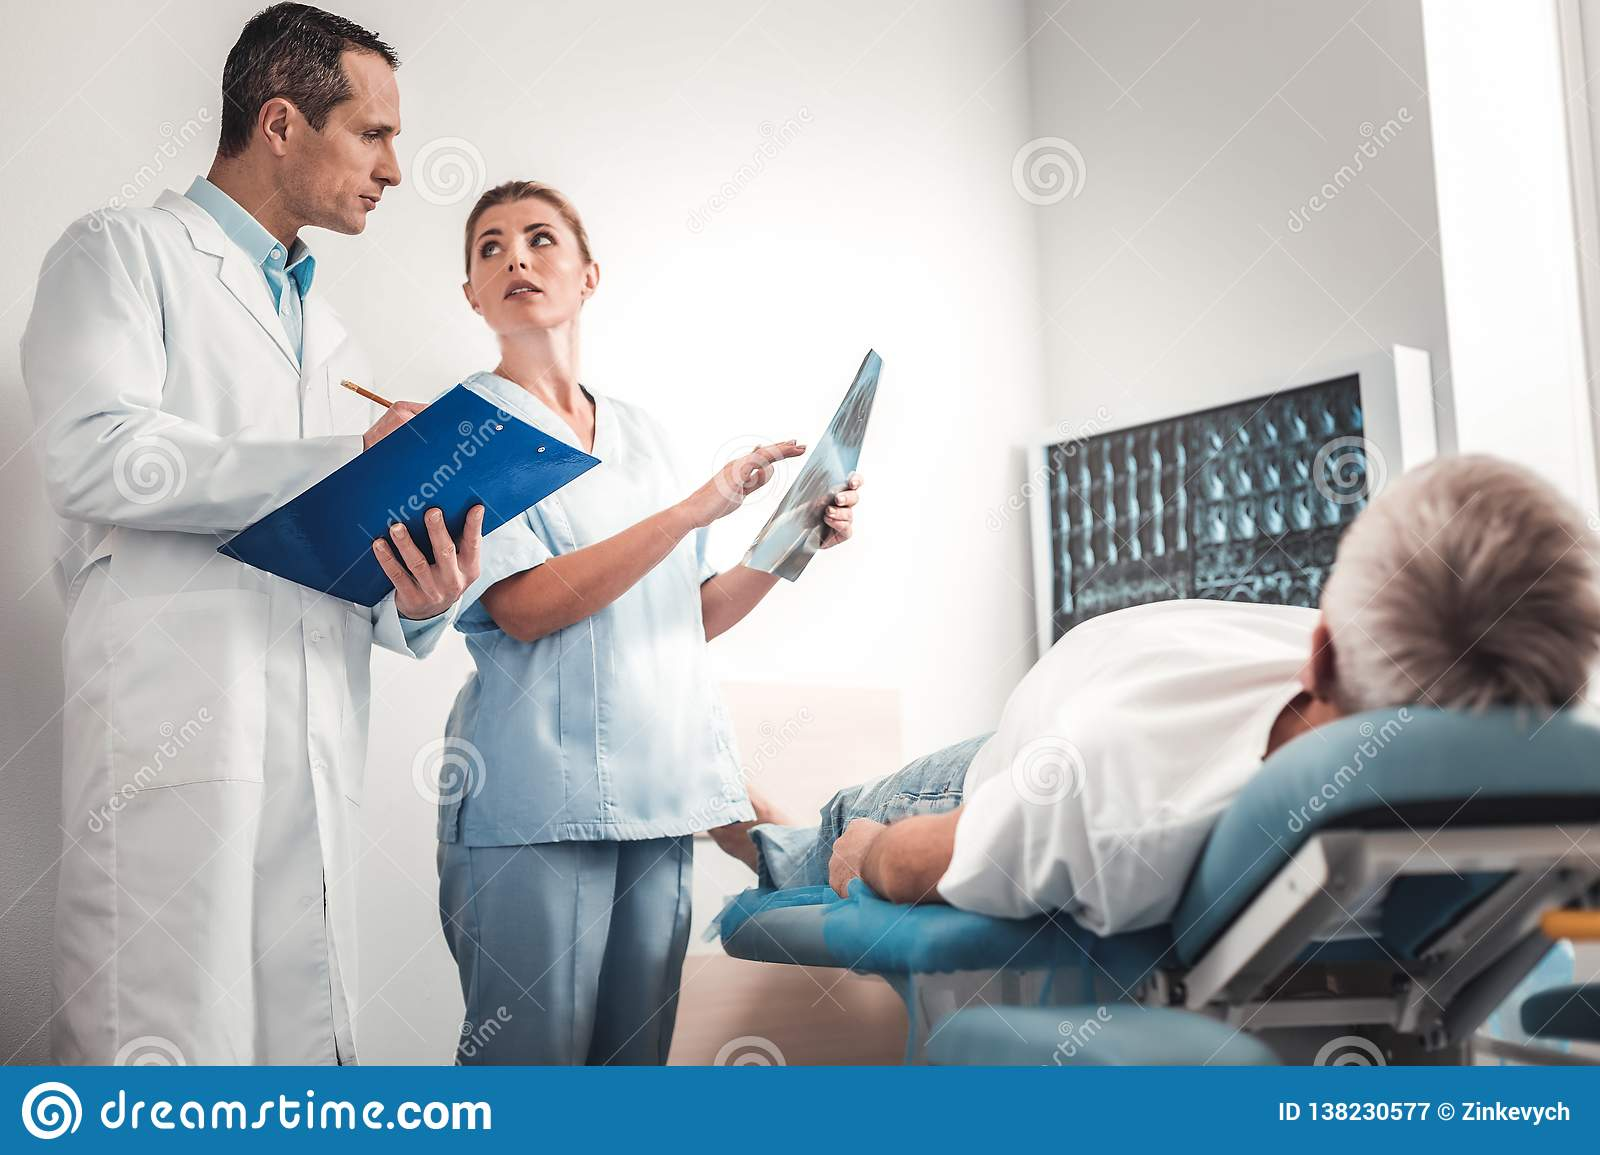 Dark-haired doctor wearing white uniform listening to recommendations